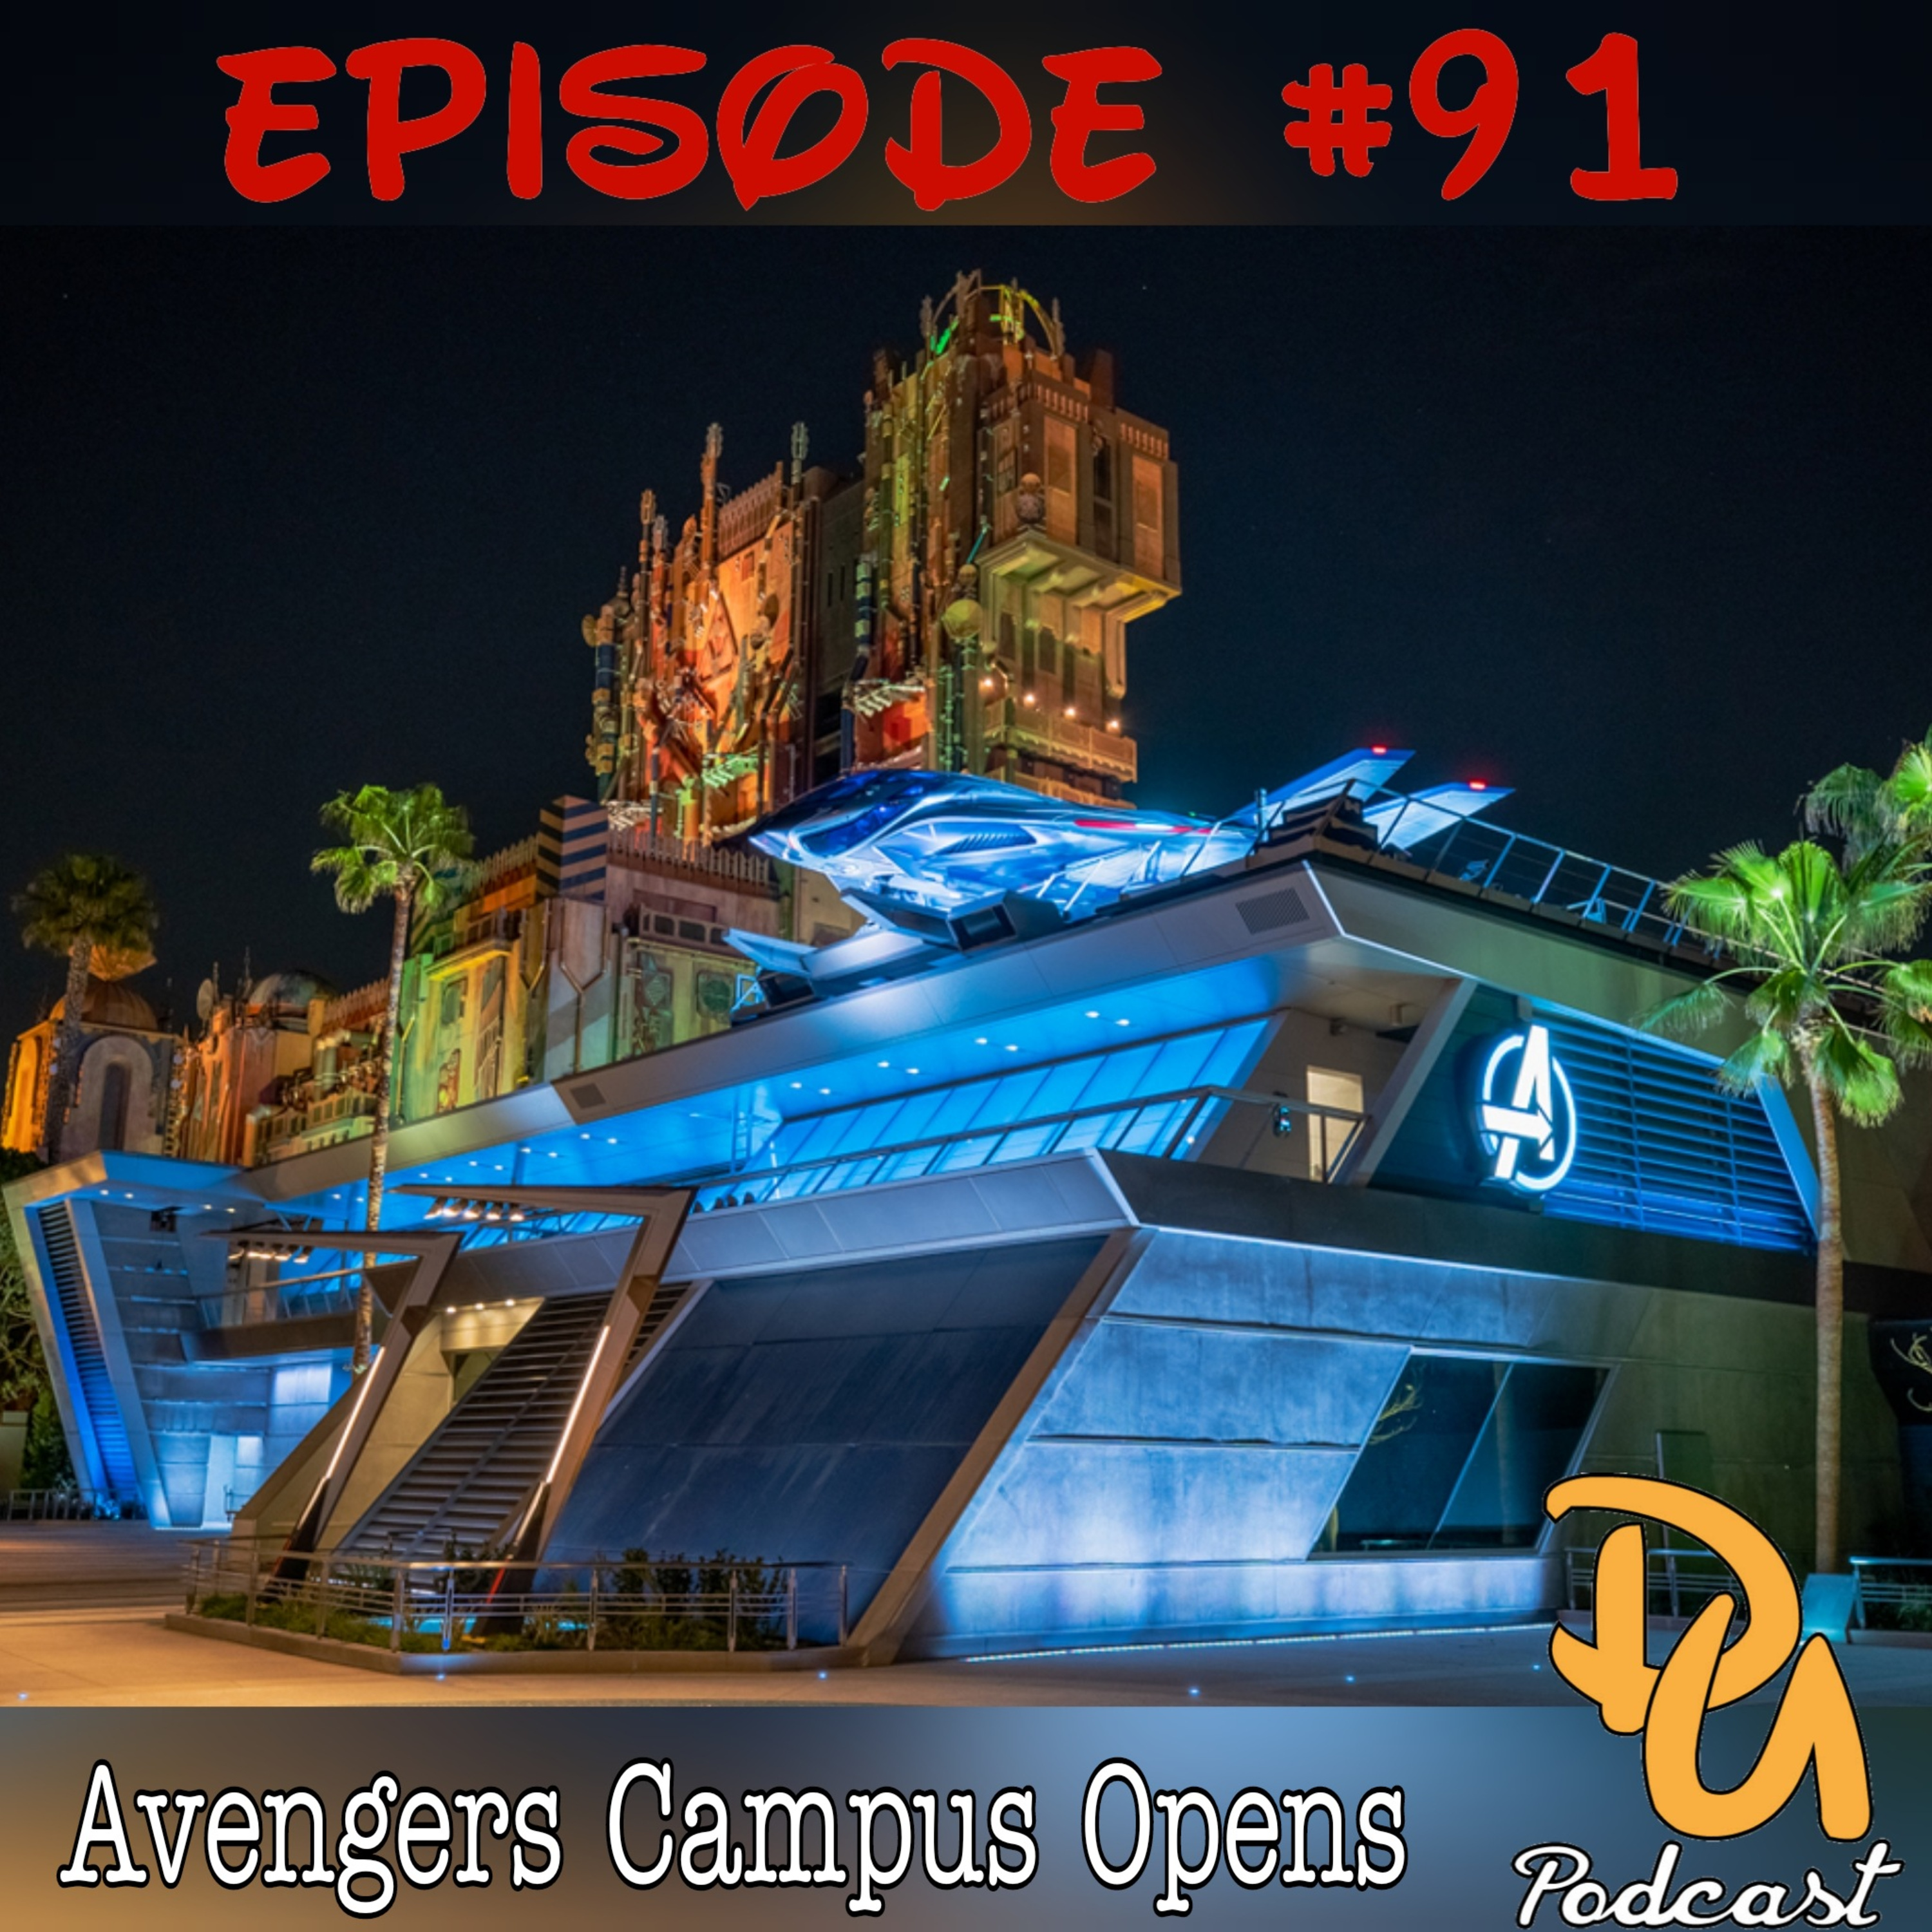 Avengers Campus Opens